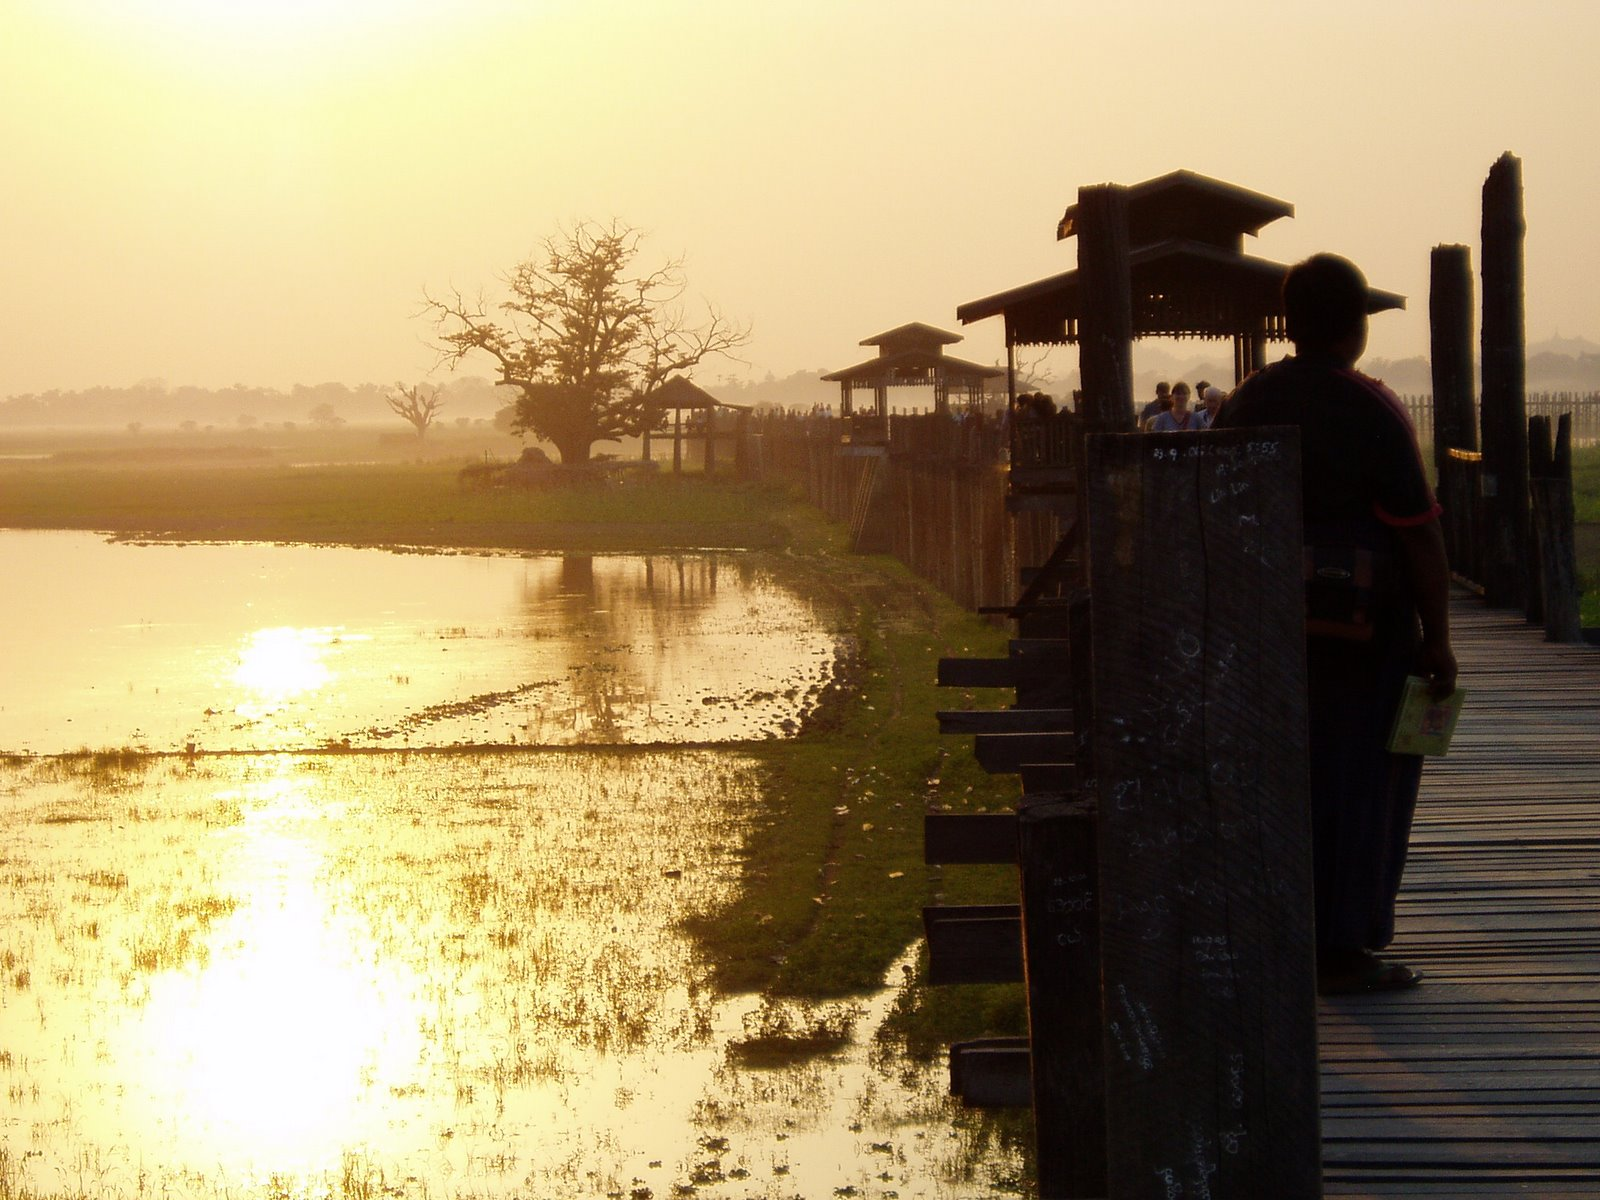 U Bein Bridge/ Myanmar